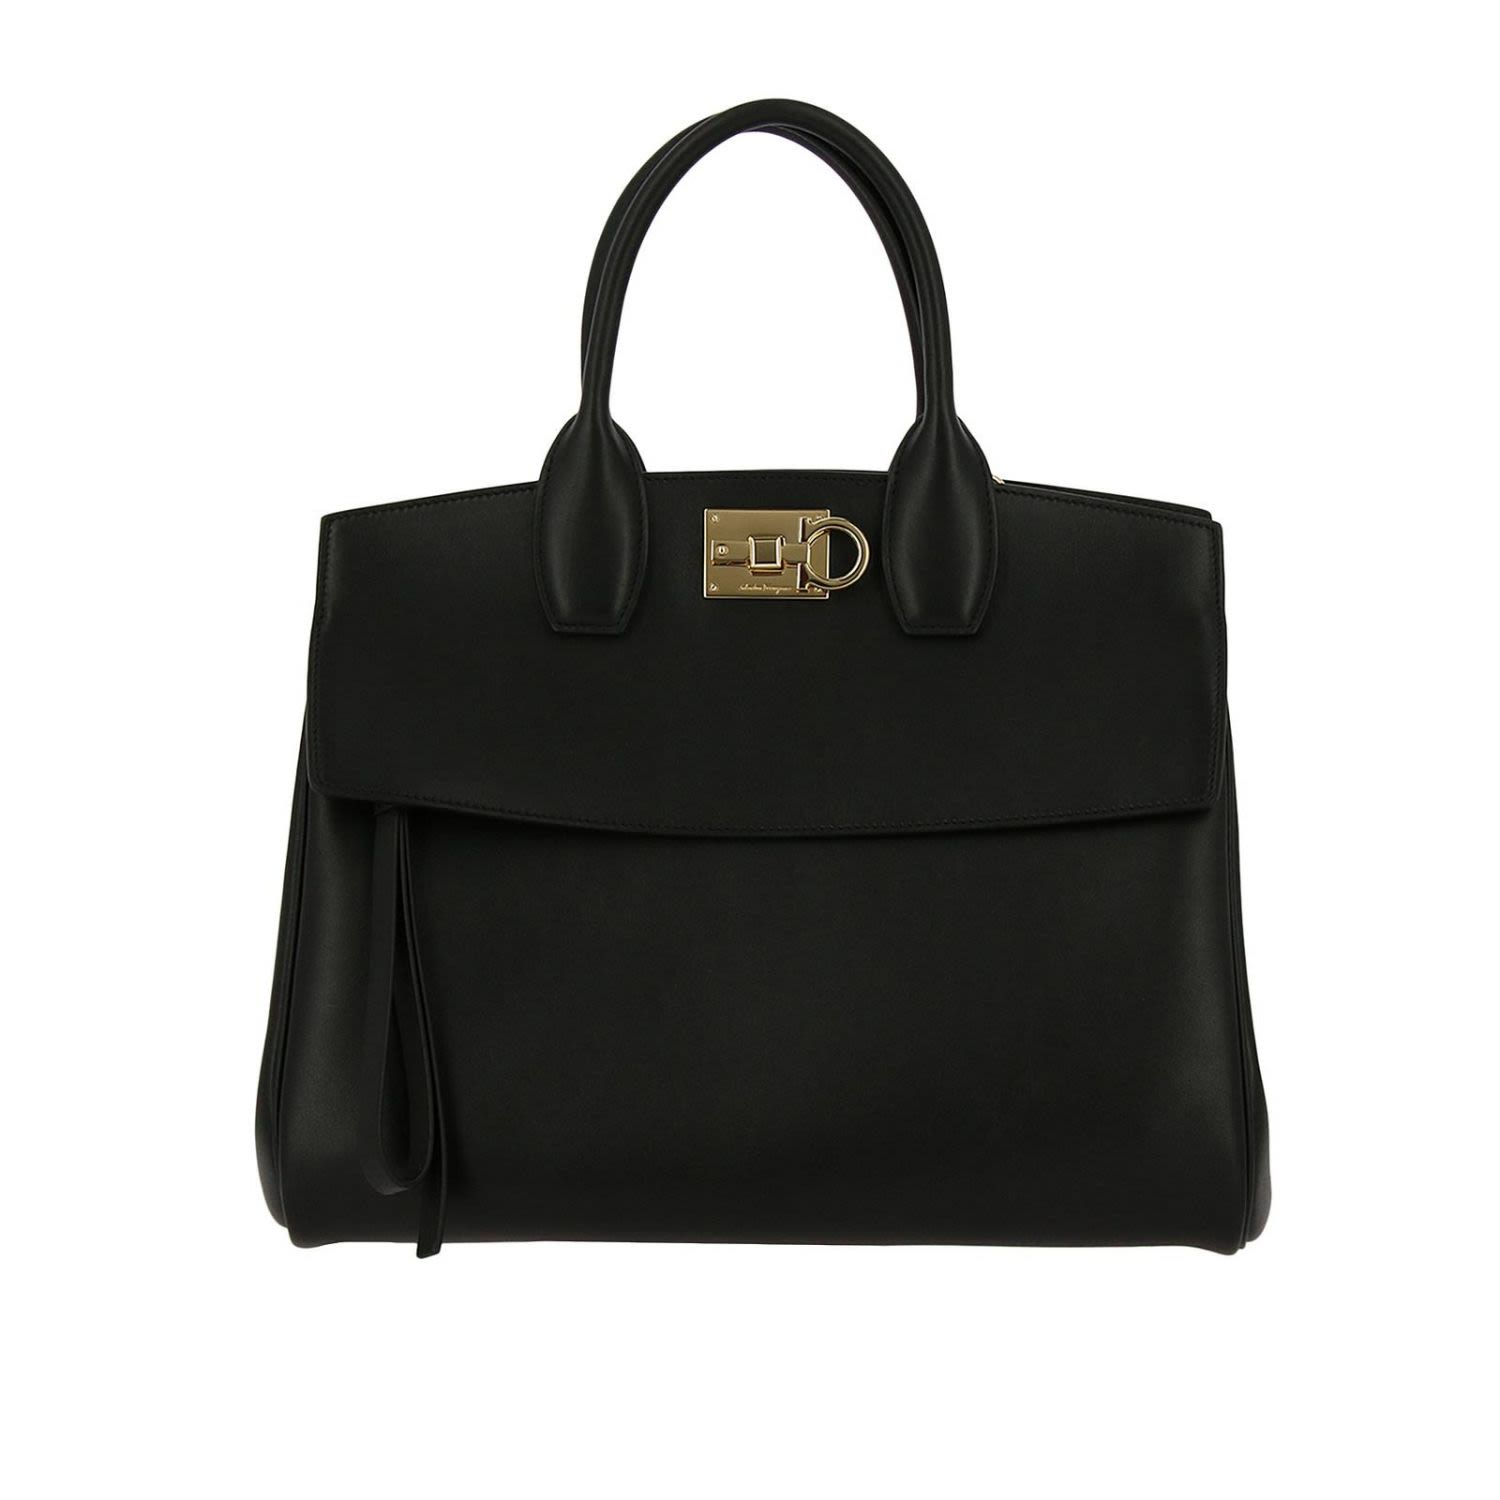 Salvatore ferragamo handbag shoulder bag women salvatore ferragamo black  jpg 1500x1500 Salvatore ferragamo black handbags eef76433bfa3c